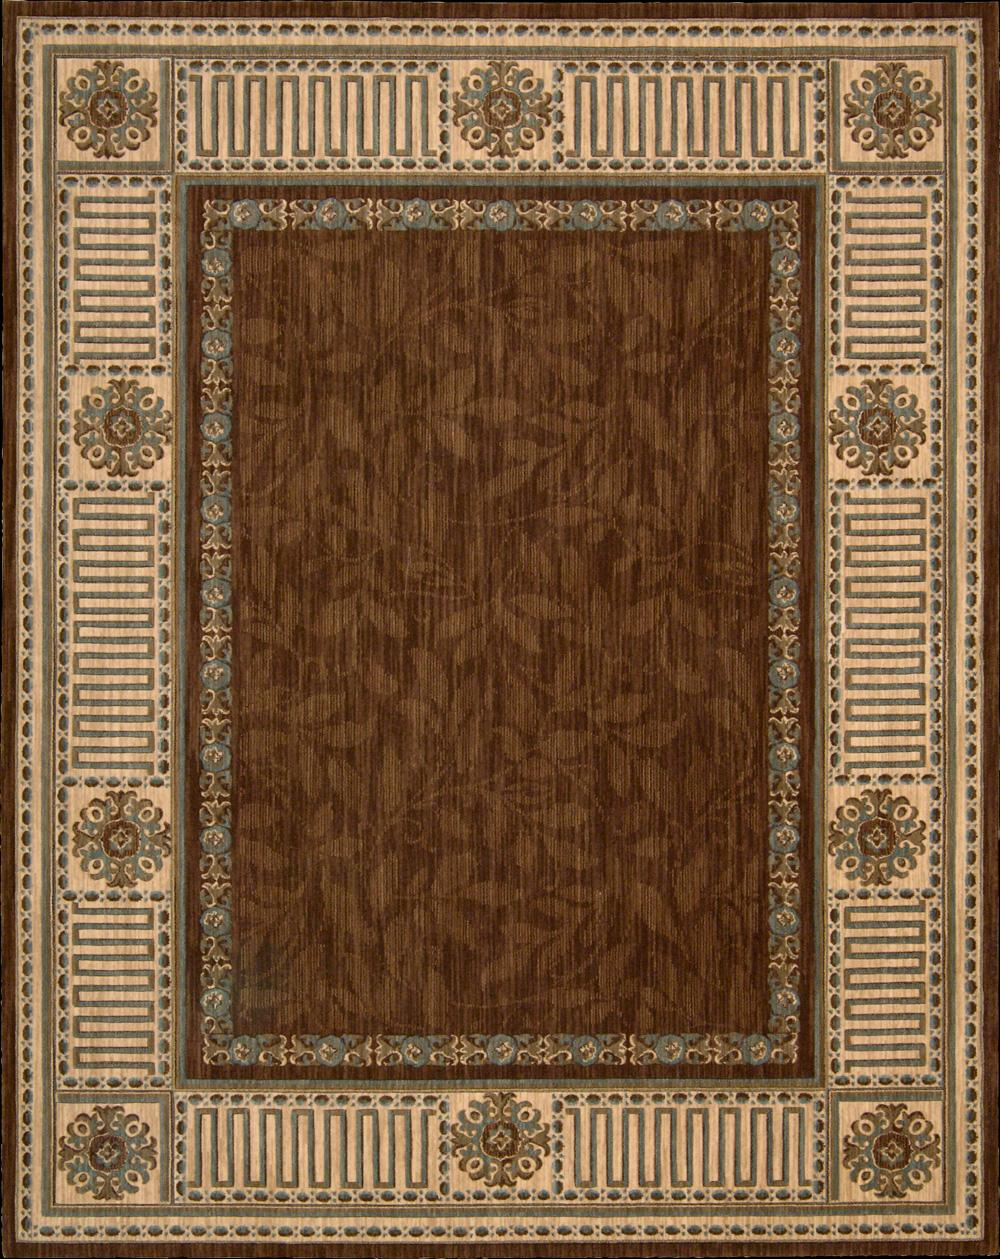 "Nourison Vallencierre Area Rug 3'6"" x 5'6"" - Item Number: 61925"